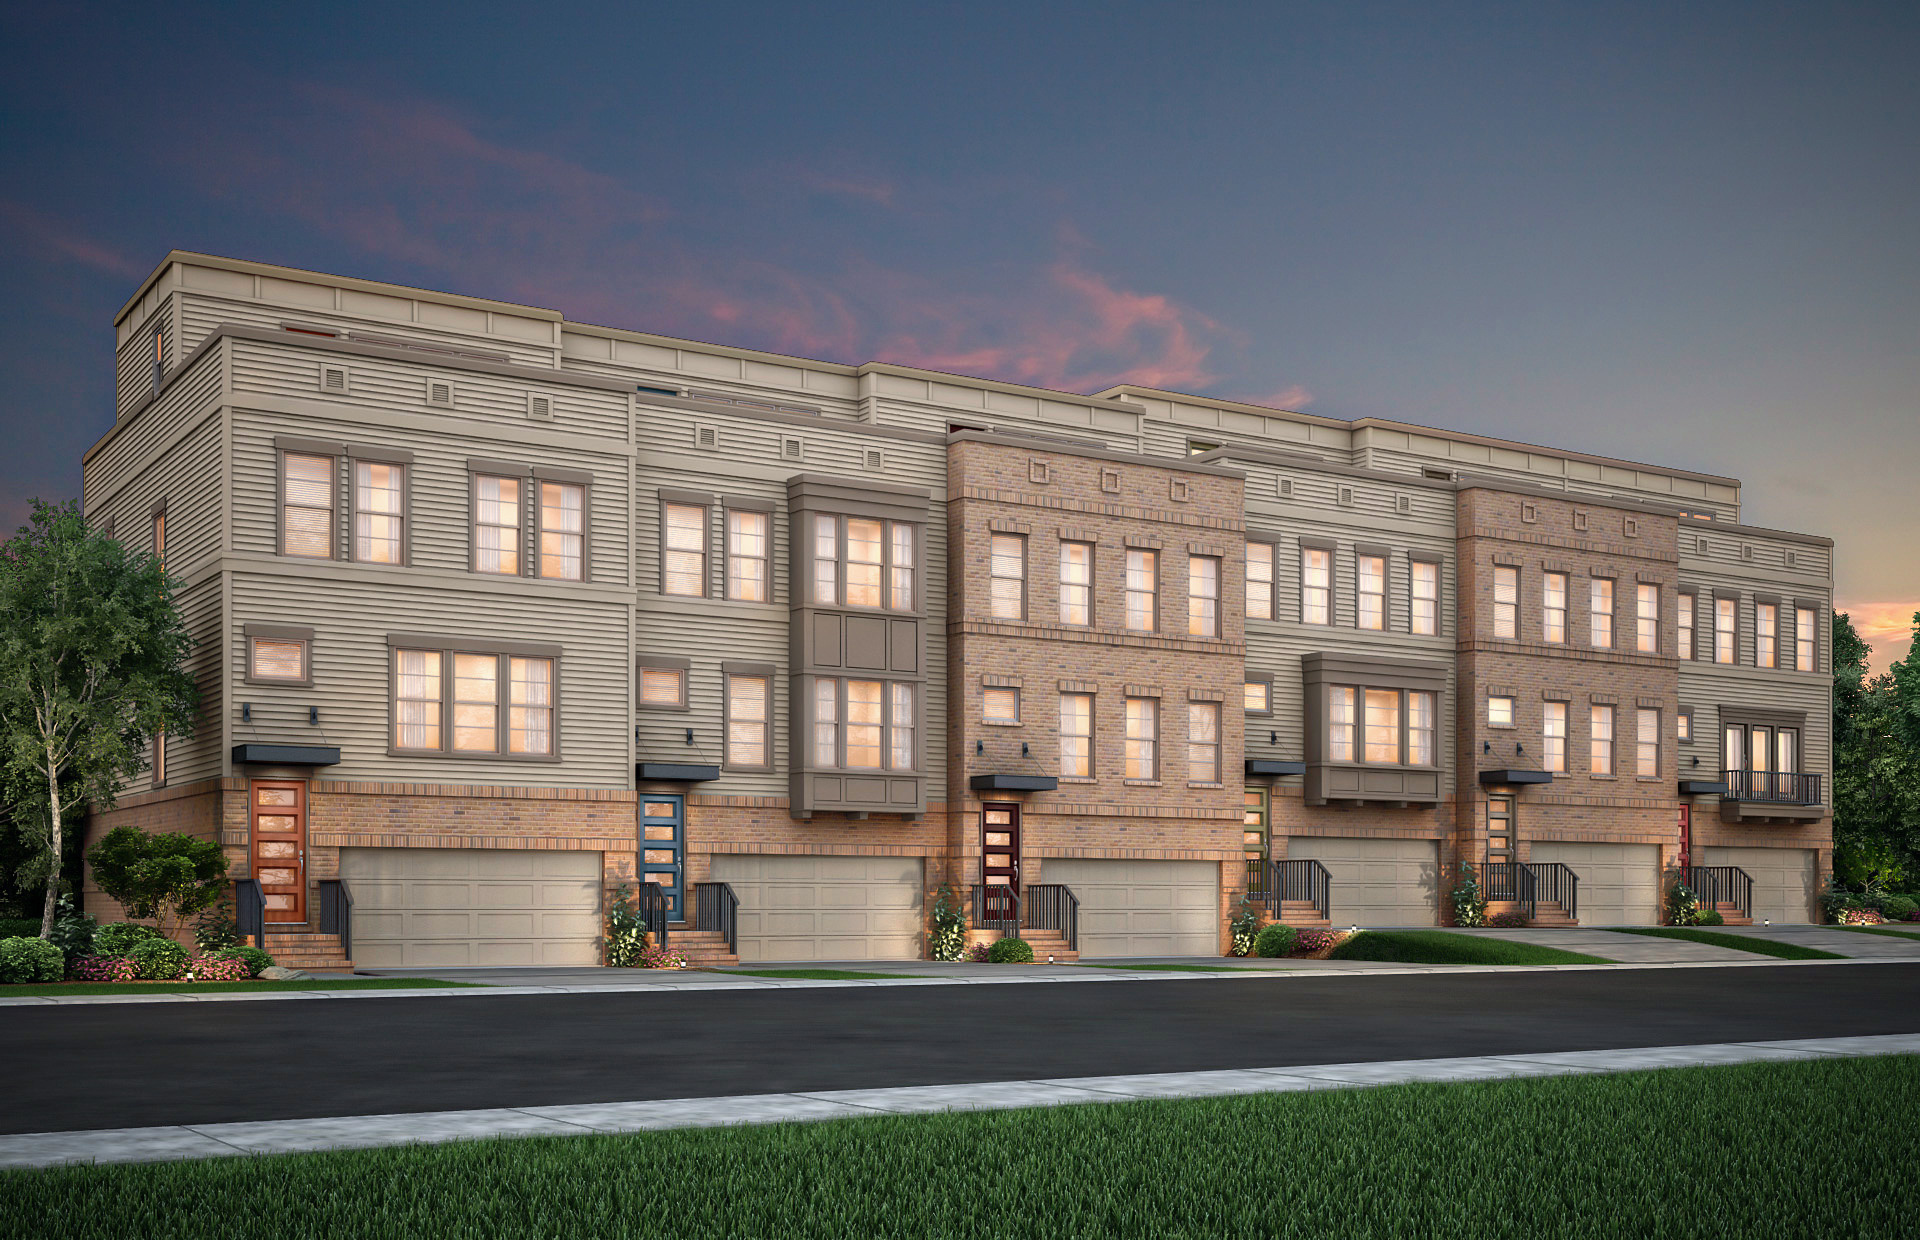 A rendering shows a beige and tan brick townhome building, each unit featuring a two-car garage and a different color front door.